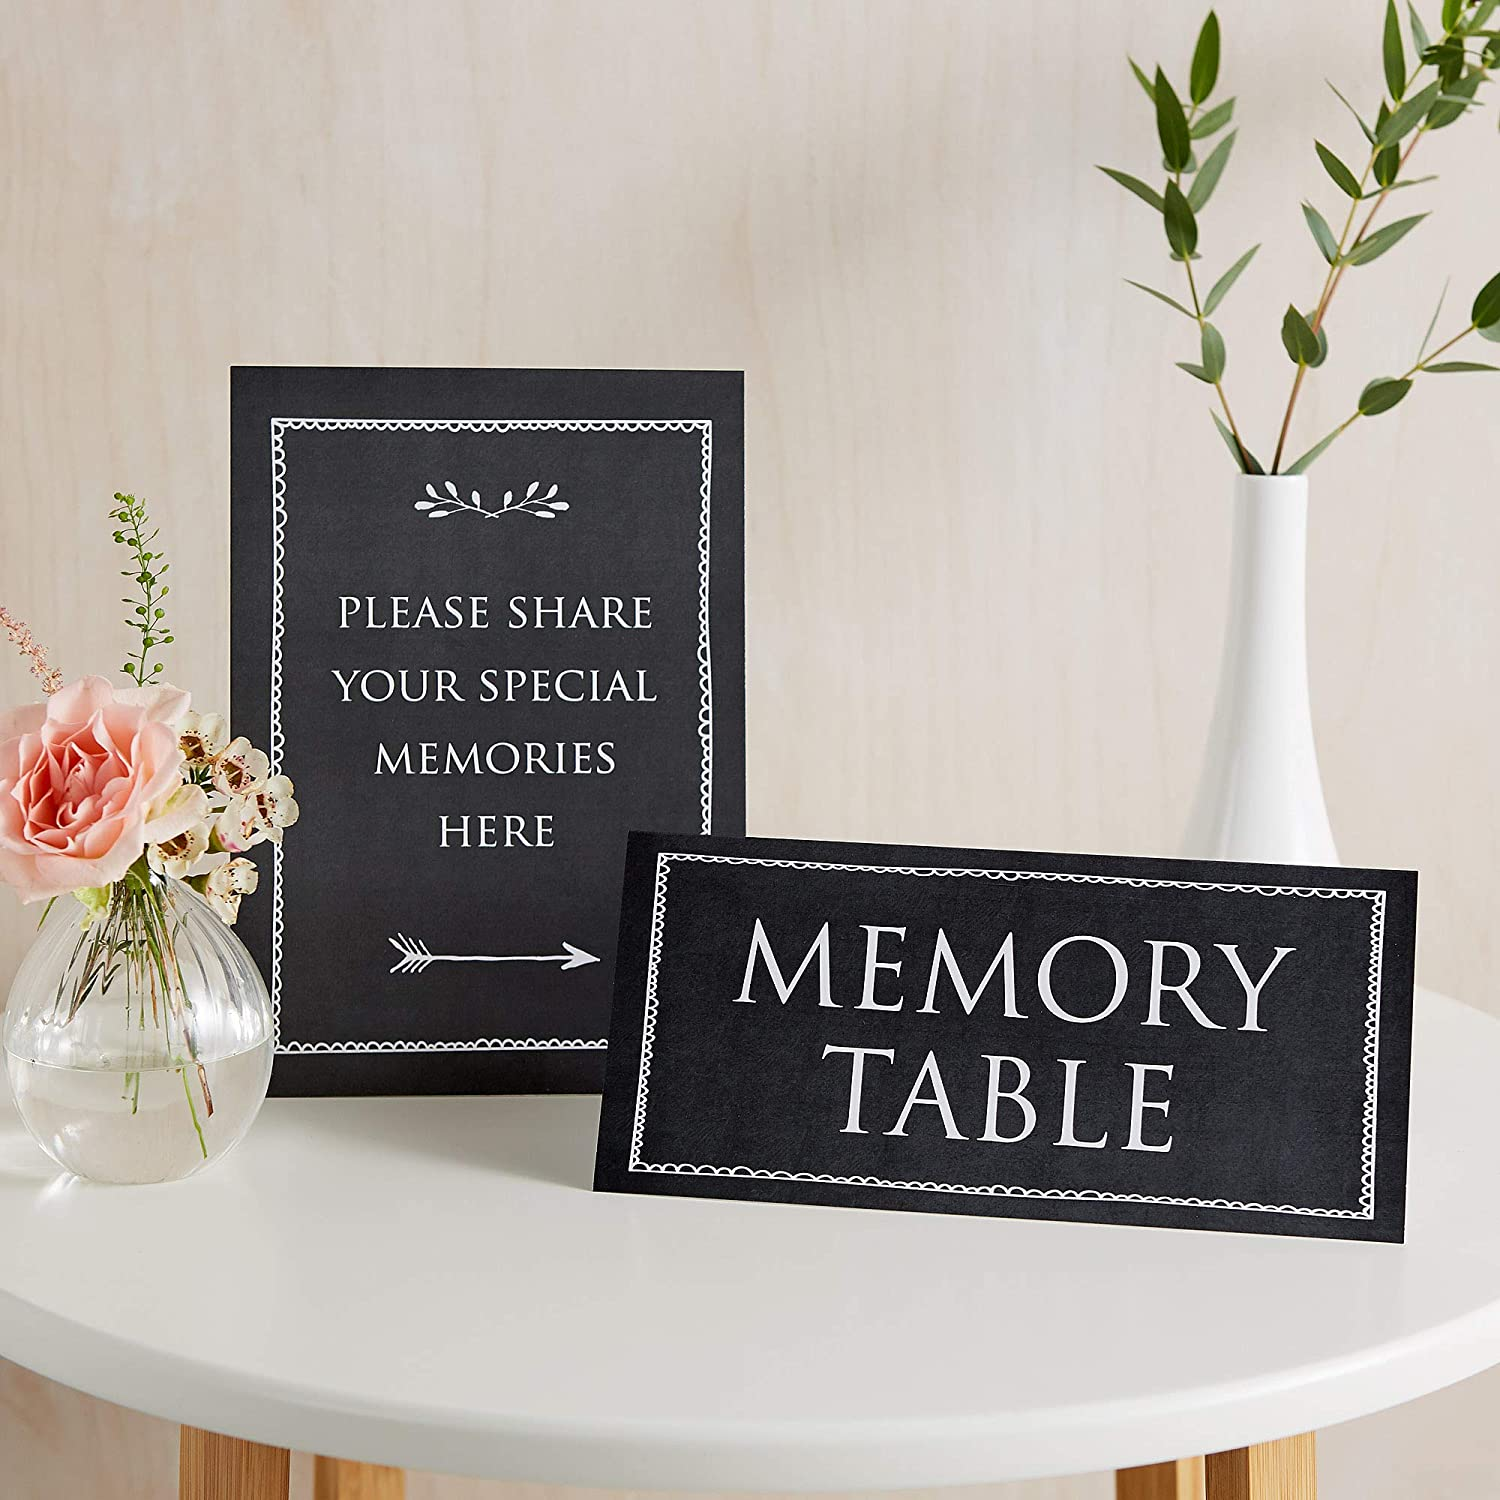 MEMORY BOOK Ivory Card Tent Sign for Memory Table Funeral Celebration of Life